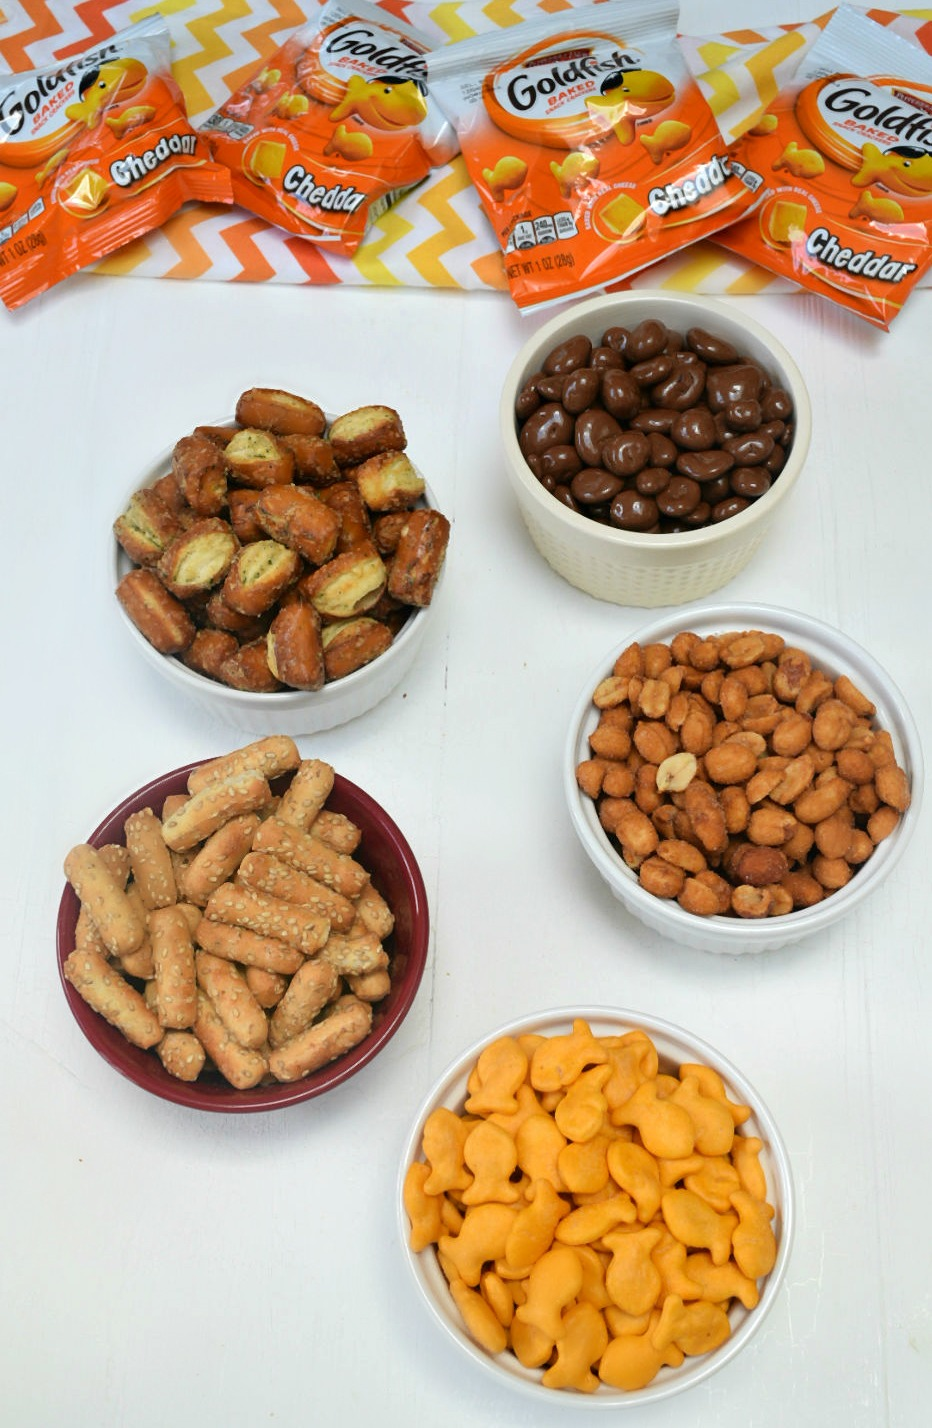 ingredients for sweet and salty snack mix